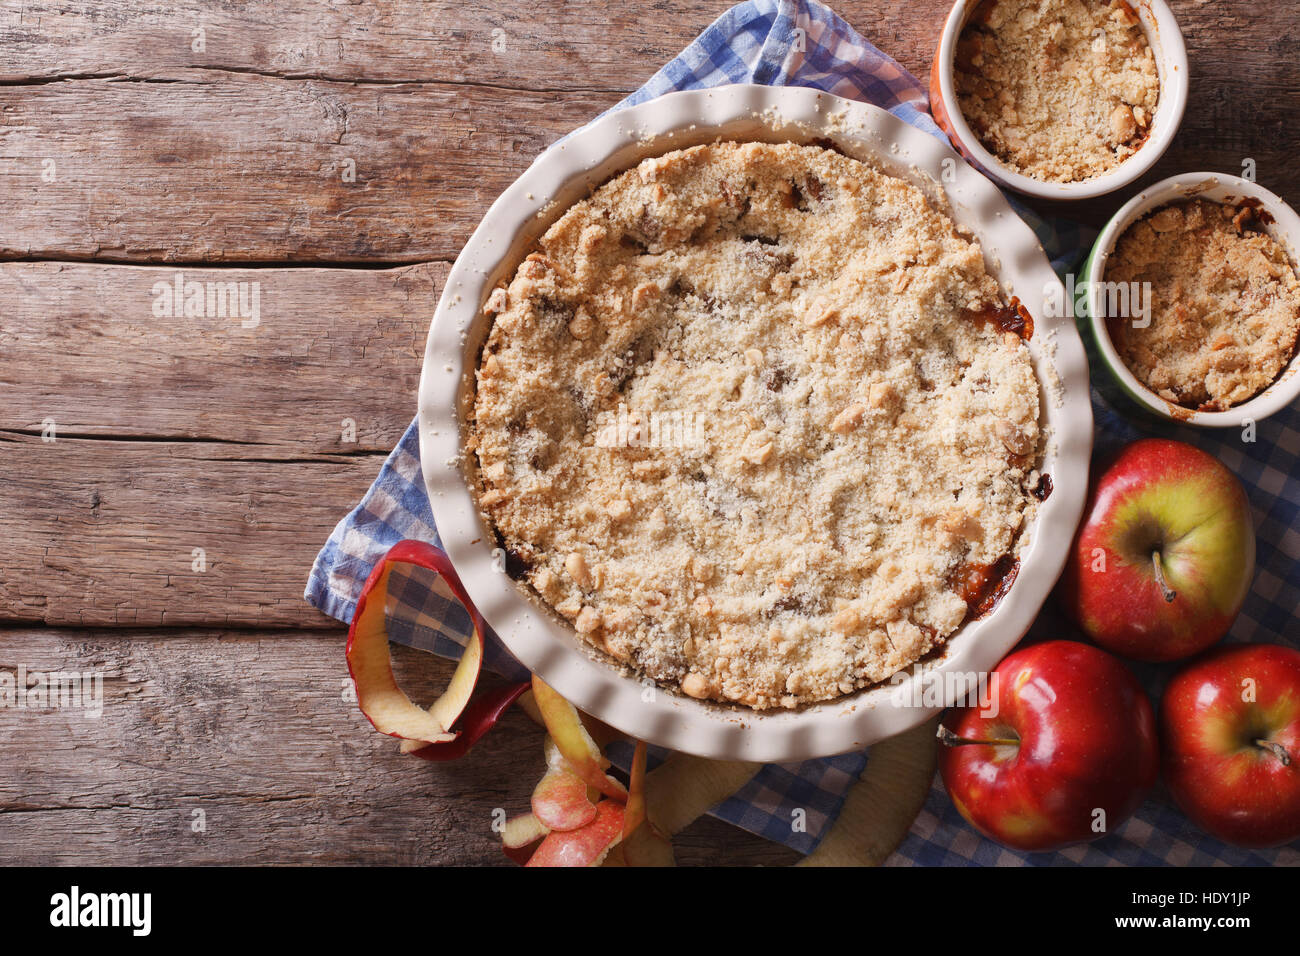 Traditional apple crisp close-up in baking dish. view from above horizontal, rustic style Stock Photo